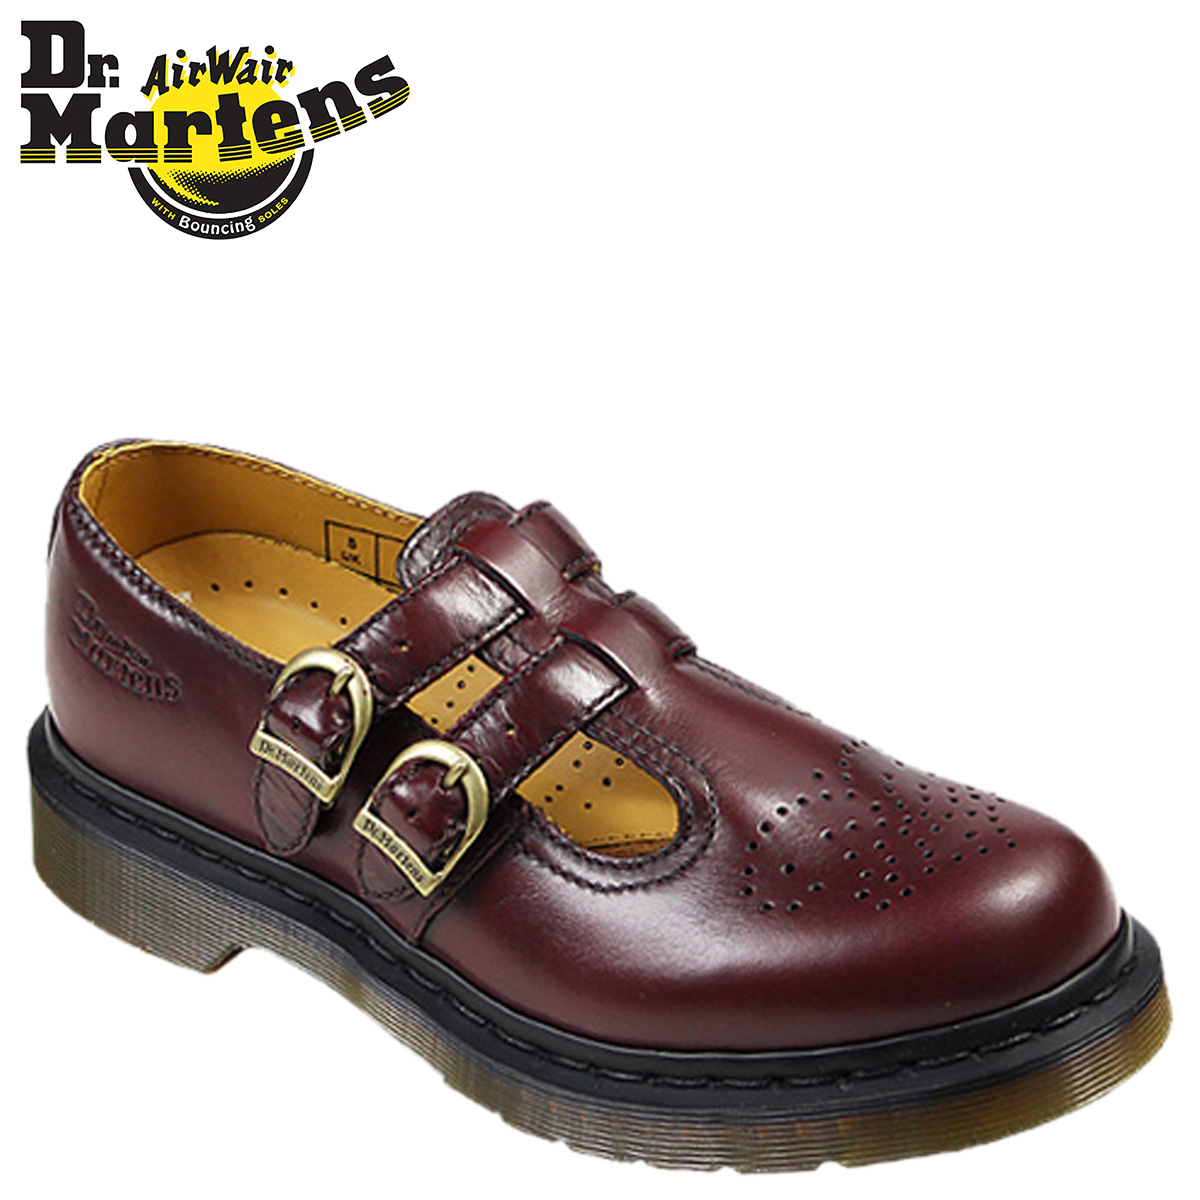 Sugar Online Shop | Rakuten Global Market: 8065 8065 doctor Martin Dr. Martens Lady's Mary Jane double trap shoes MARY JANE DOUBLE STRAP SHOE  leather ...